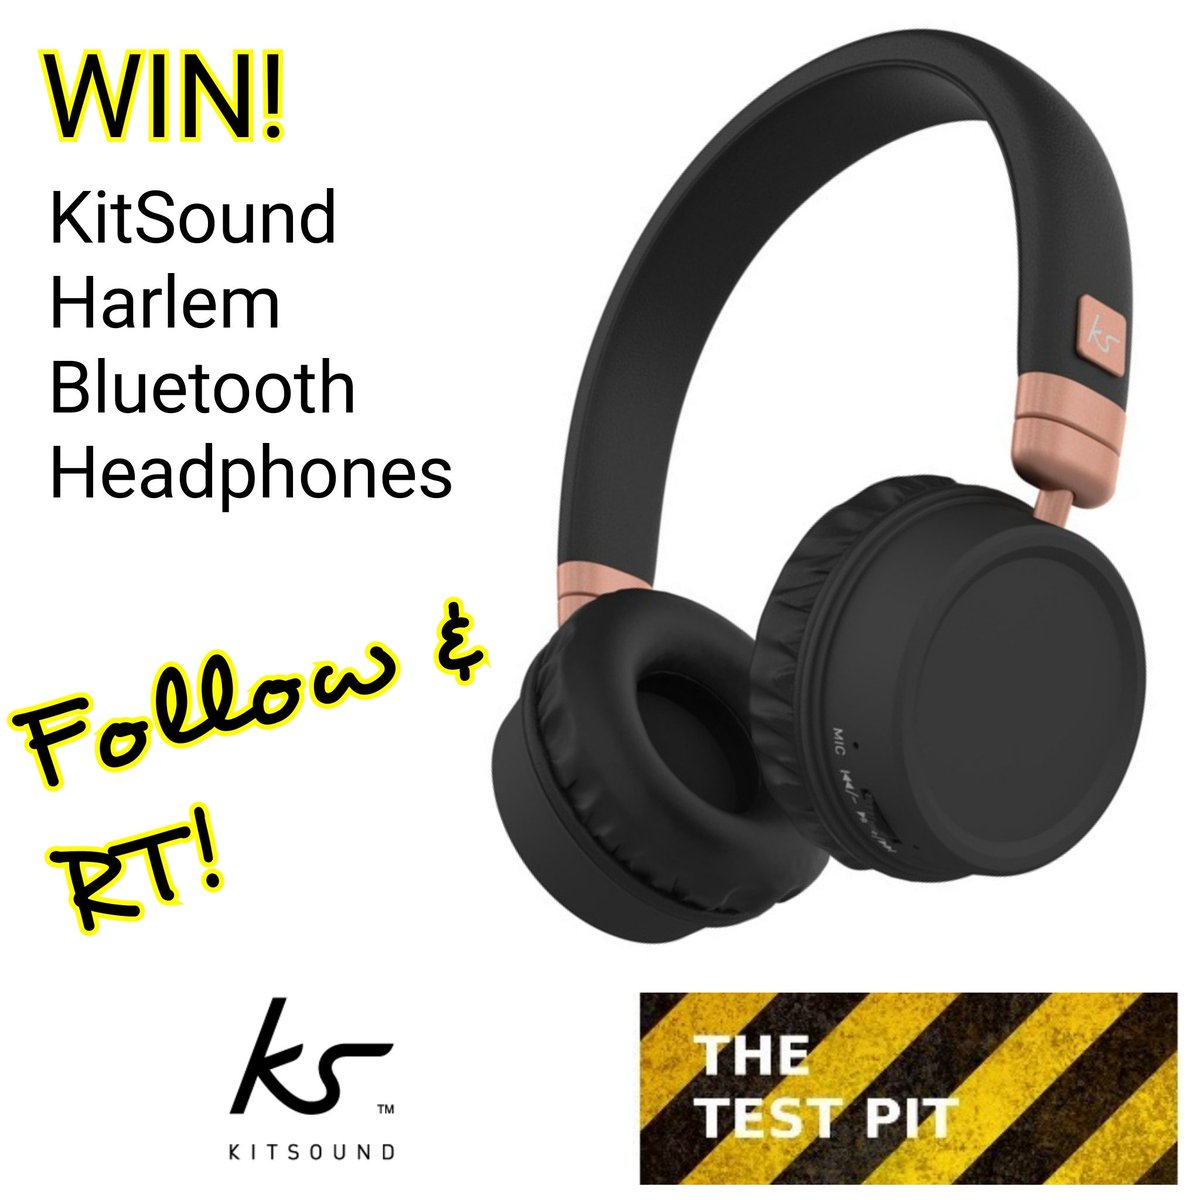 Our latest #competition is to #win @KitSoundUK Harlem Wireless Headphones. Follow &amp; RT to enter.  http://www. thetestpit.com/2017/06/compet ition-win-kitsound-harlem.html &nbsp; …  #giveaway<br>http://pic.twitter.com/kDJEr9qpSm